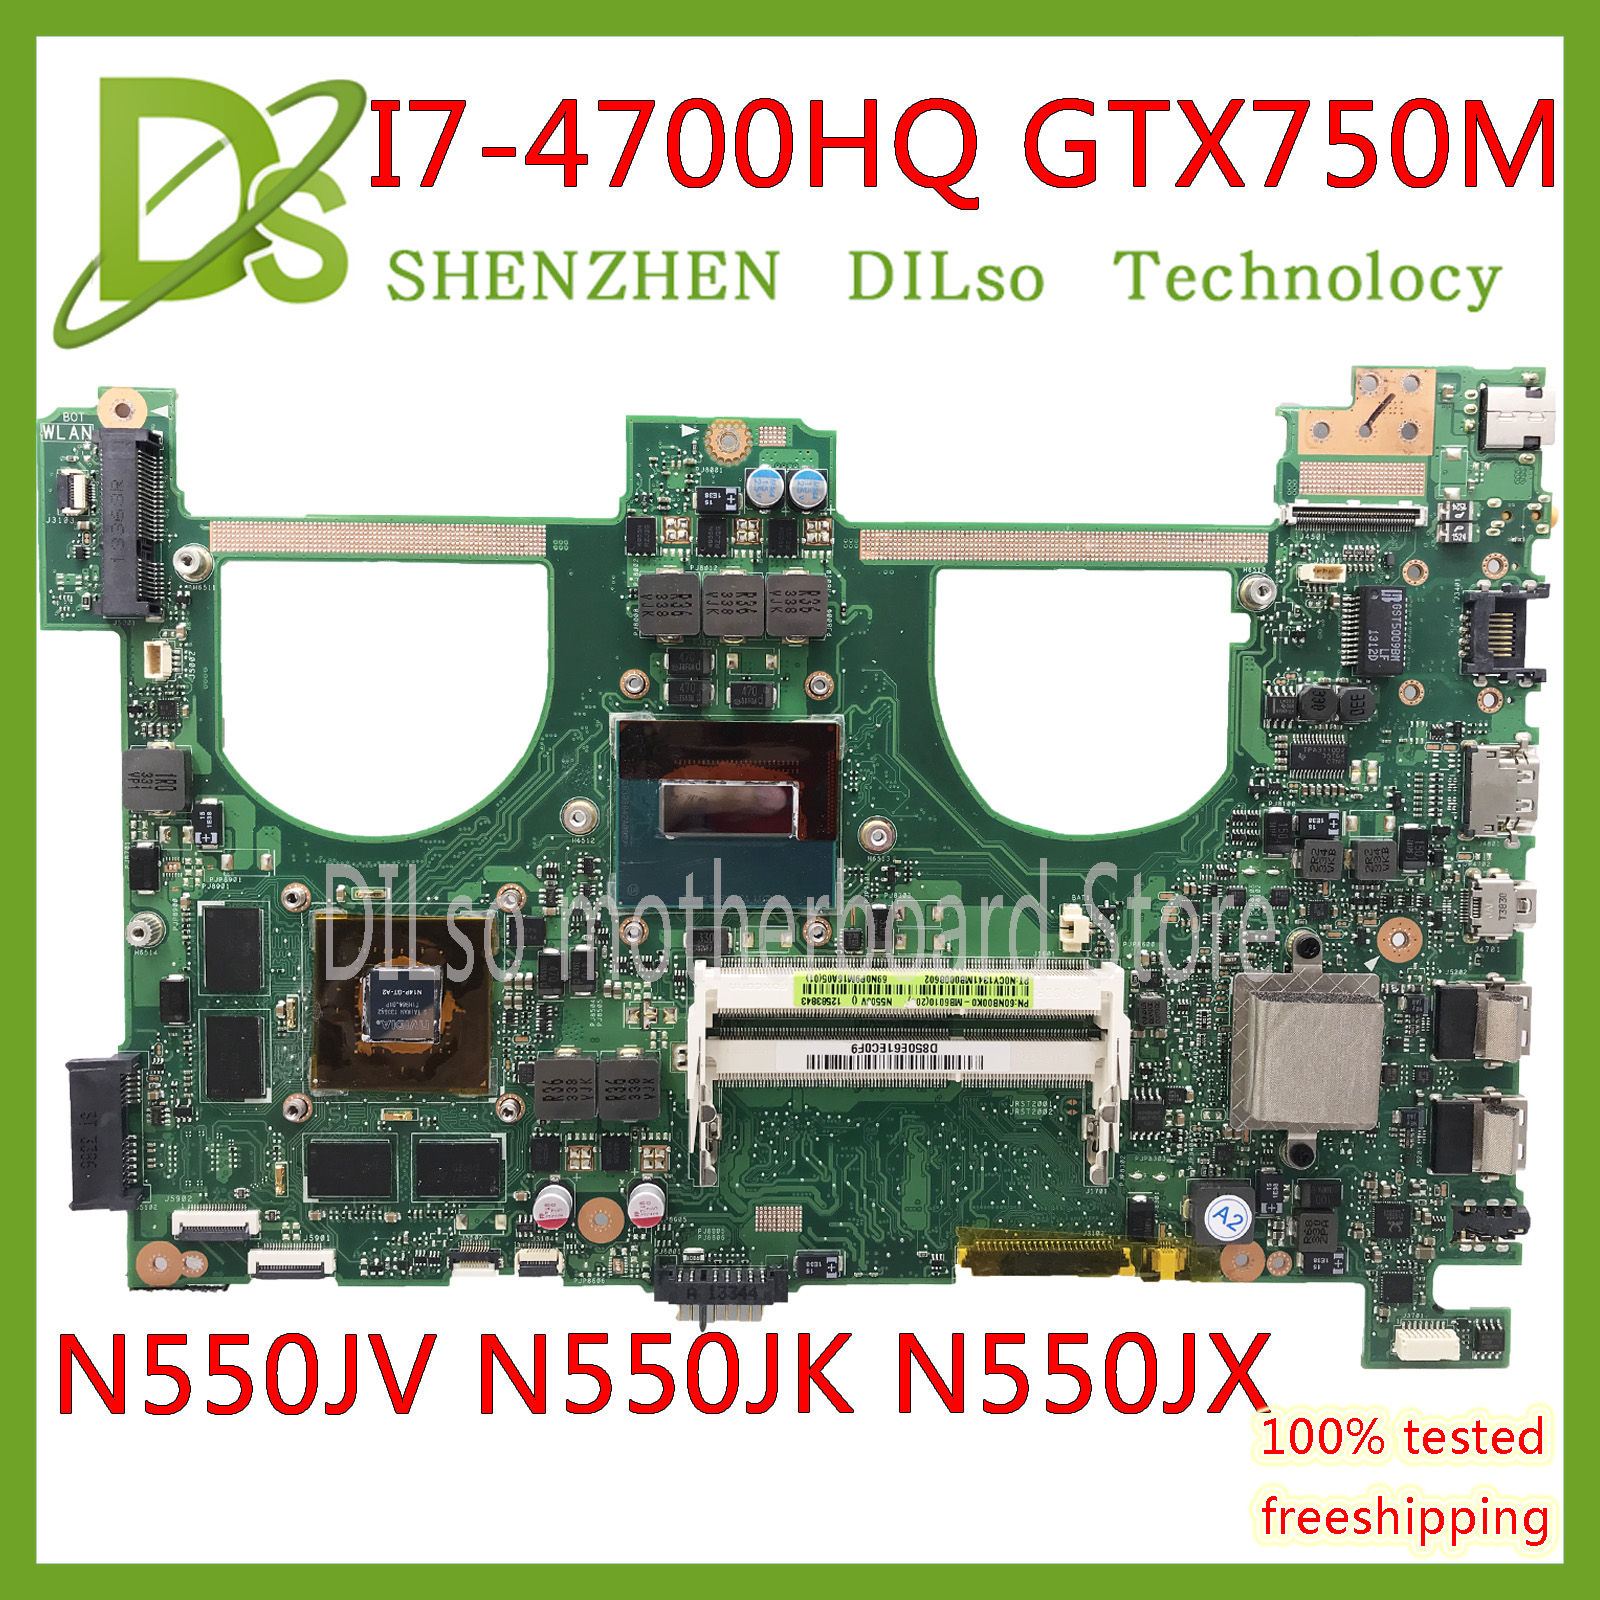 KEFU N550JV For ASUS N550jv N550JK N550J N550JX Laptop Motherboard i7-4700HQ GTX750 4GB/<font><b>2GB</b></font> <font><b>GPU</b></font> Mainboard Test new motherboard image